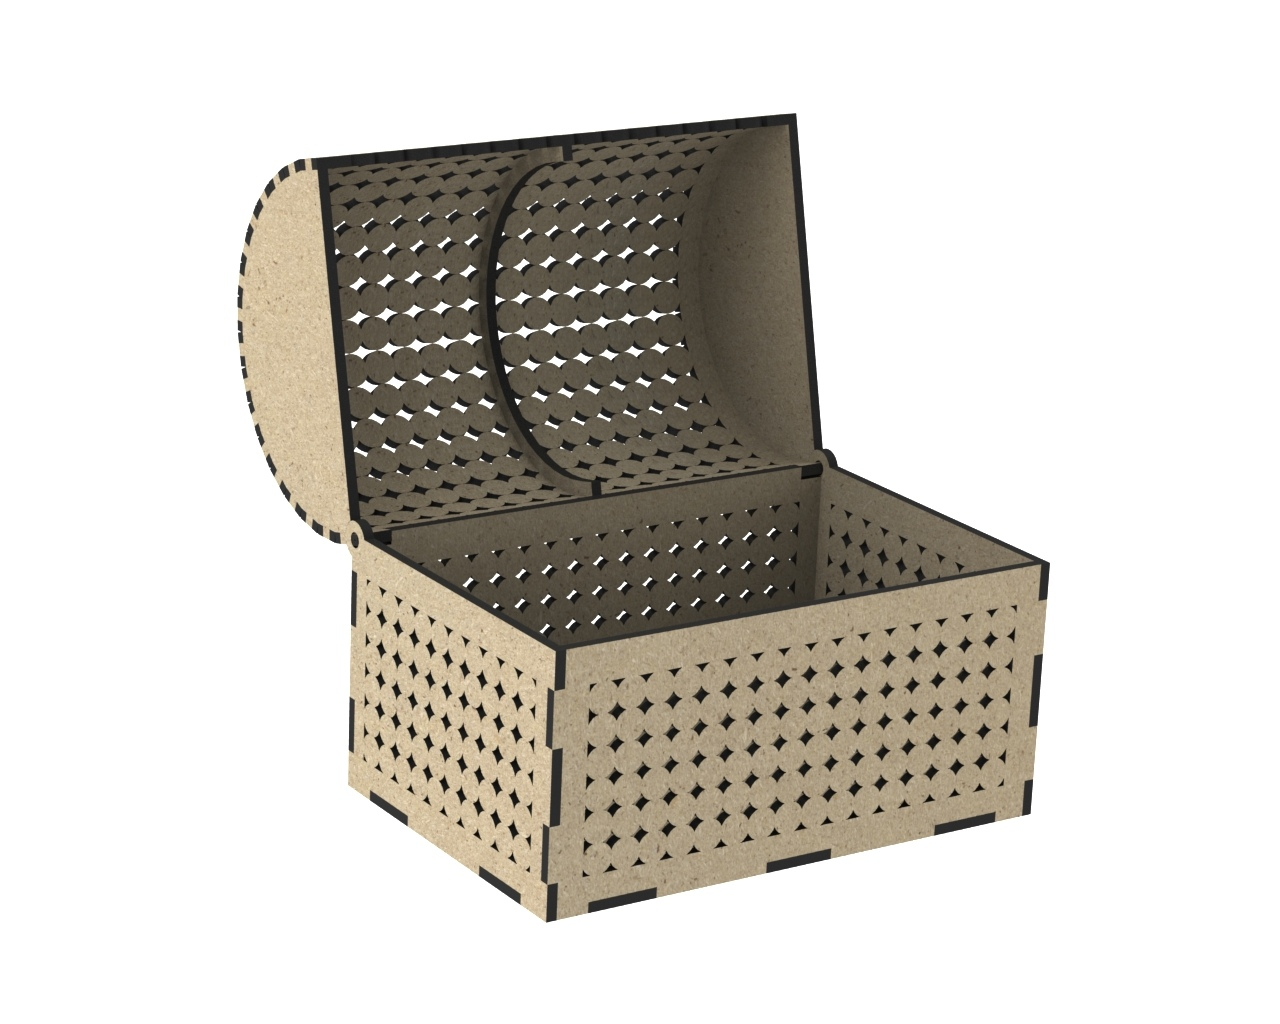 Laser Cut Wooden Chest With Decorative Lid Free DXF File